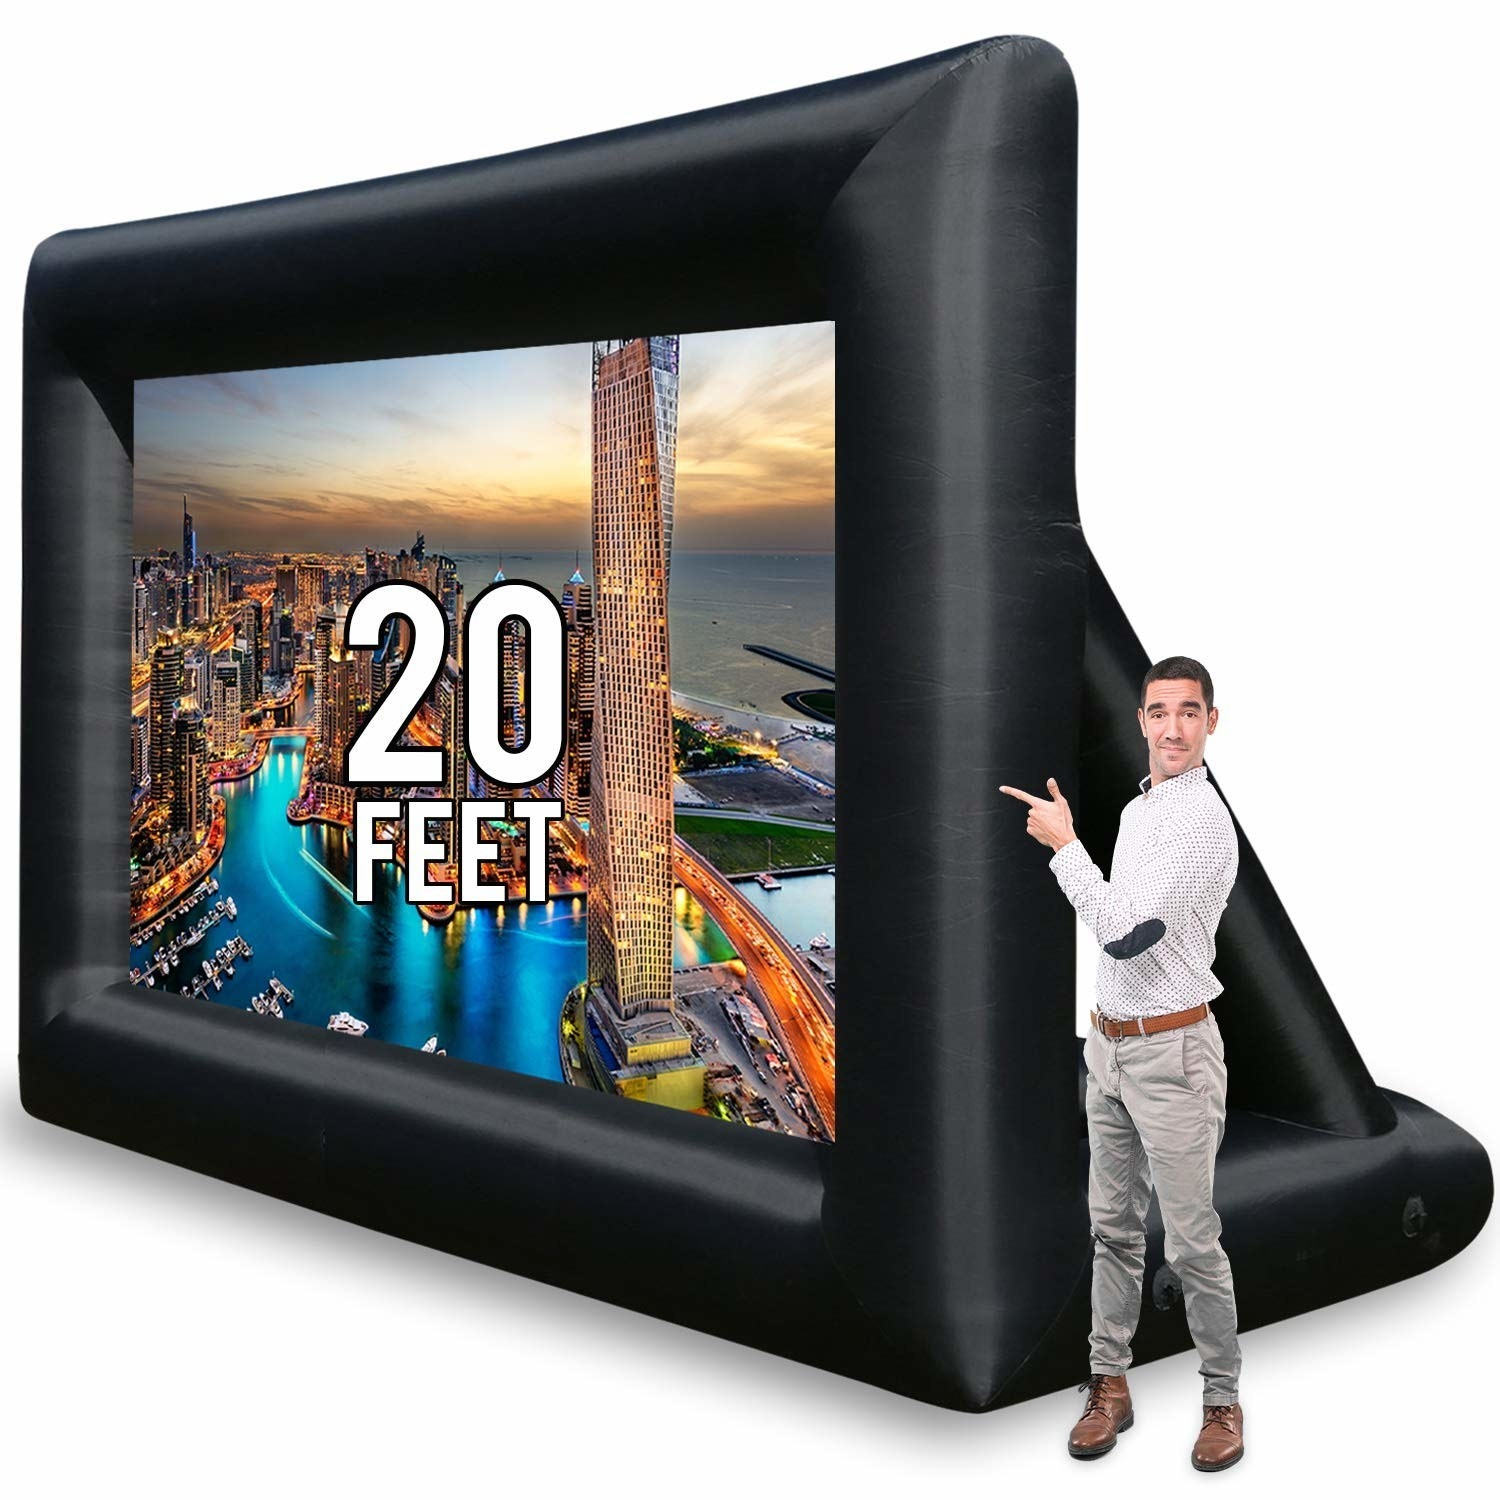 The 20 foot inflatable screen next to a person for scale